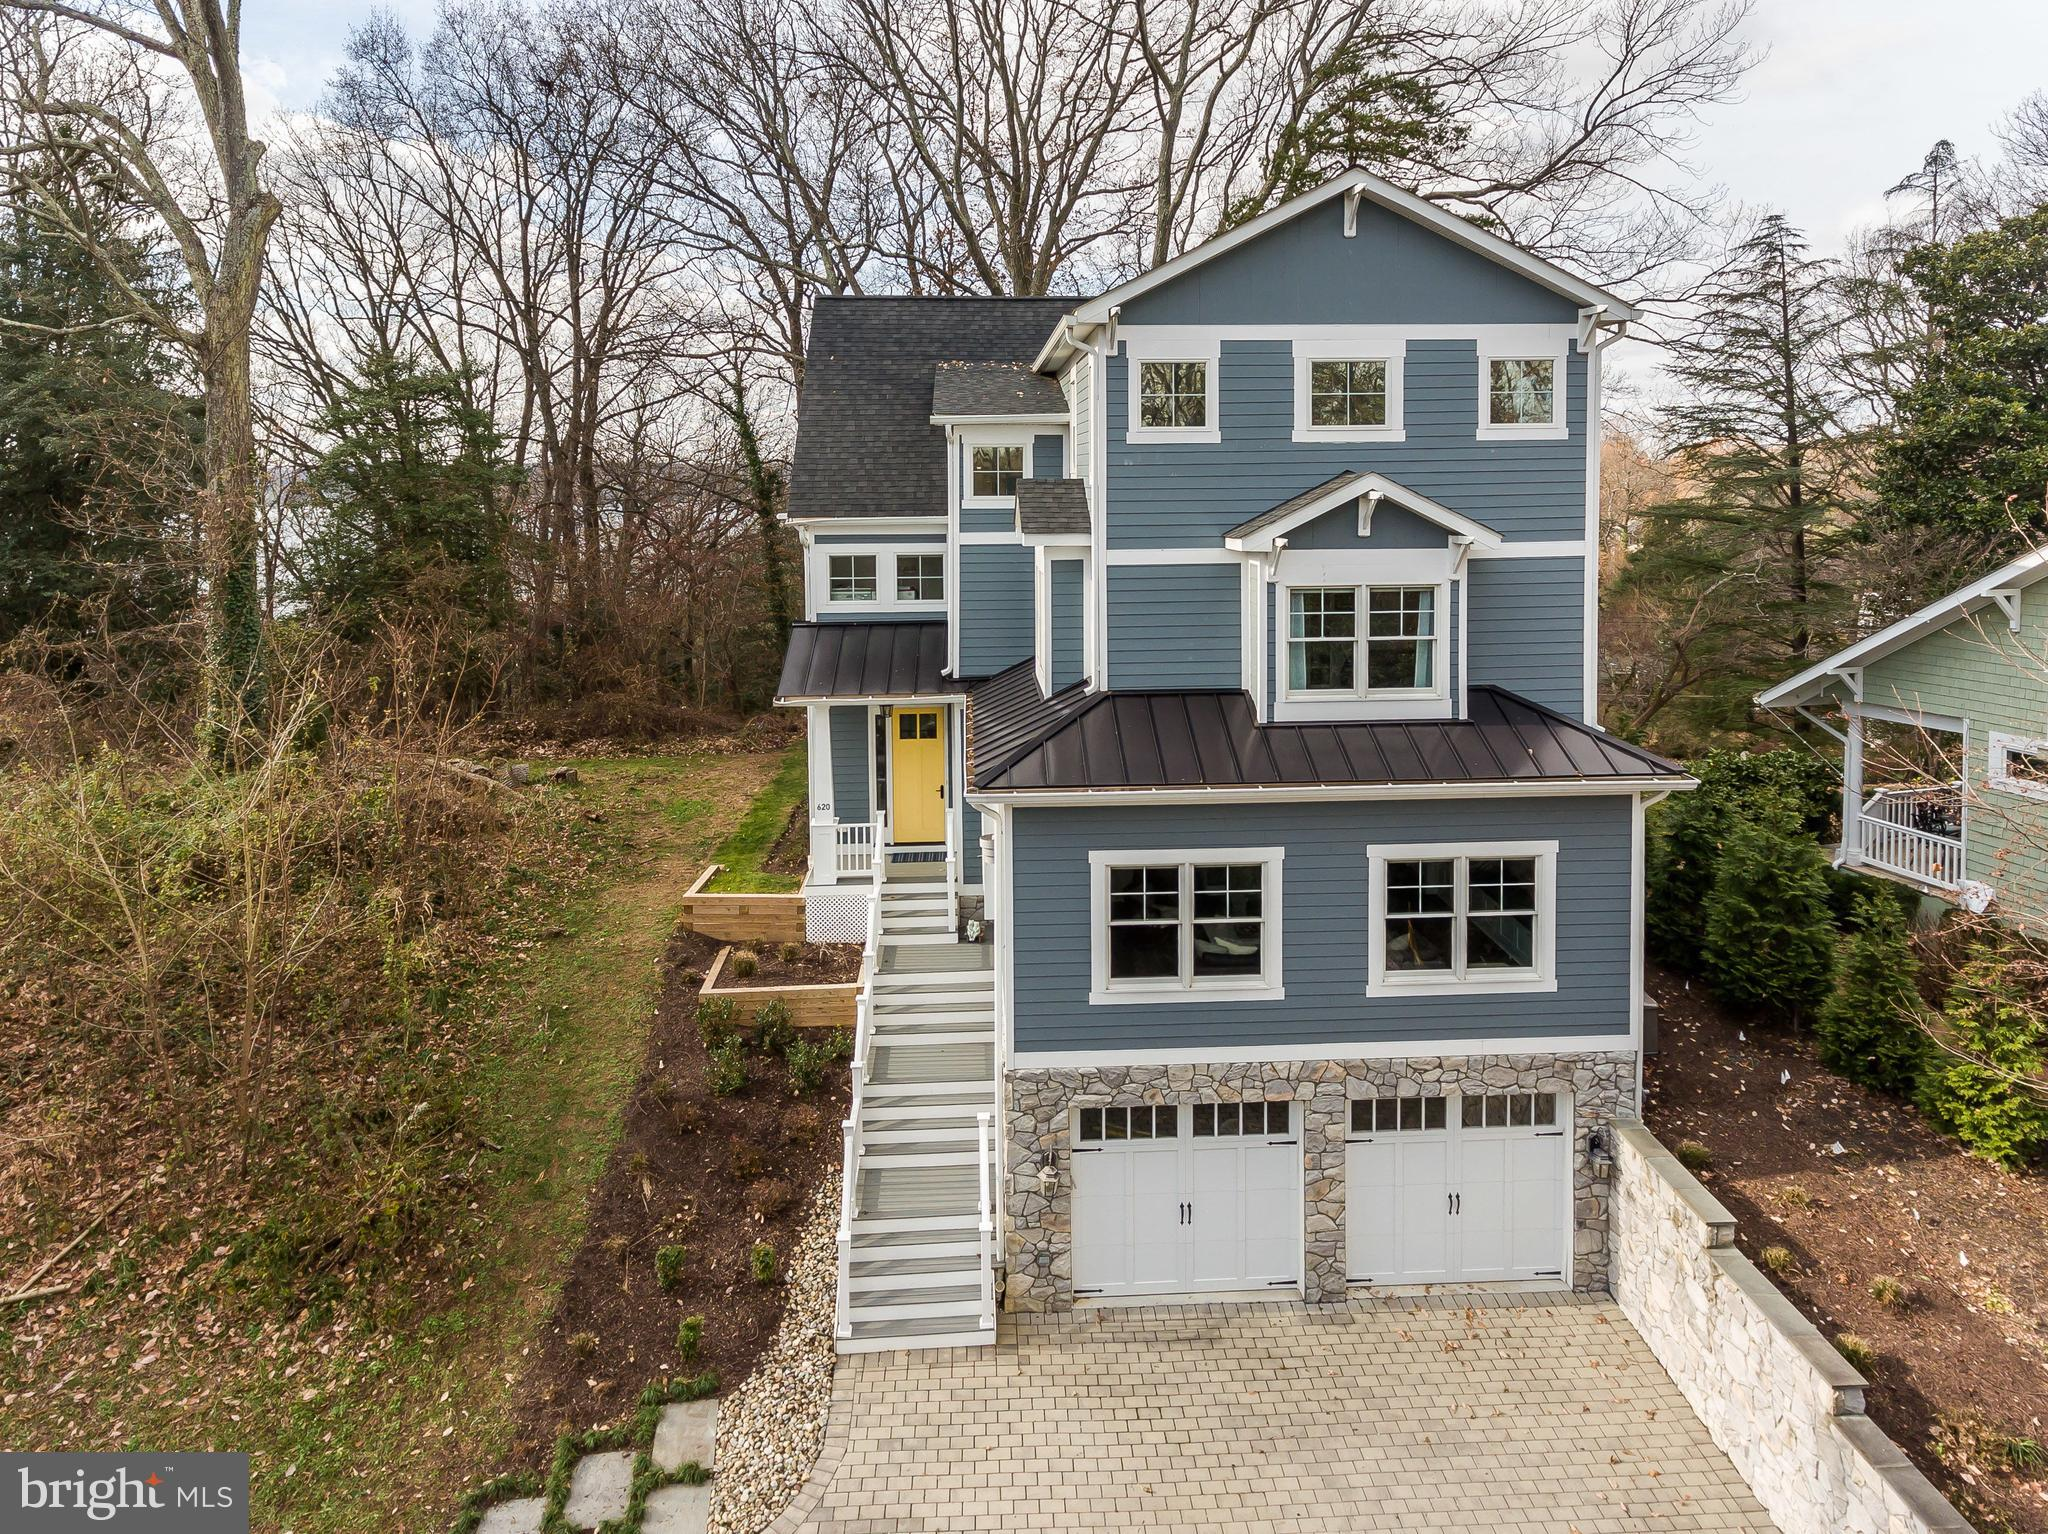 620 OLD COUNTY ROAD, SEVERNA PARK, MD 21146